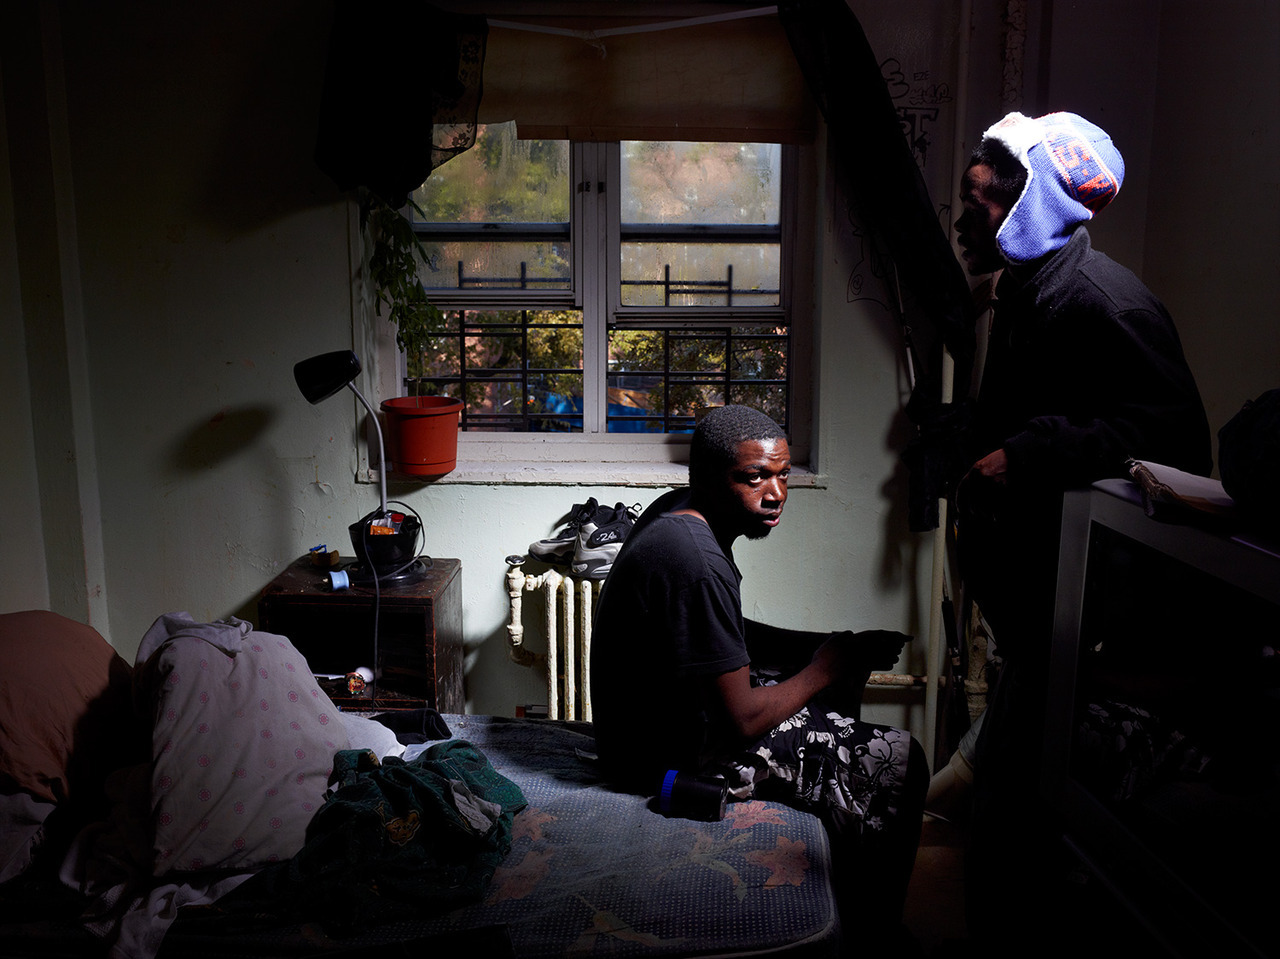 "Elijah Jones, 23, sits in his room on the fourth floor of the Redfern Houses. Since the storm, water has condensed on the walls and ceiling because his room is so cold, and mold is starting to grow on his walls. Every day he tries to clean the moisture from his room, but the water keeps coming back. ""That's the only light we got,"" he says pointing to a spotlight on a generator in the courtyard. ""We just got that like three days ago."" (photo: Finlay MacKay for TIME ) For many in Sandy's path, the storm itself was terrifying. On Staten Island, houses collapsed, crushing people underneath; in Breezy Point, families fled blocks of homes in flames. But in Redfern, the real struggle began the next day, when it became clear that power wouldn't return for weeks. See more photos here."